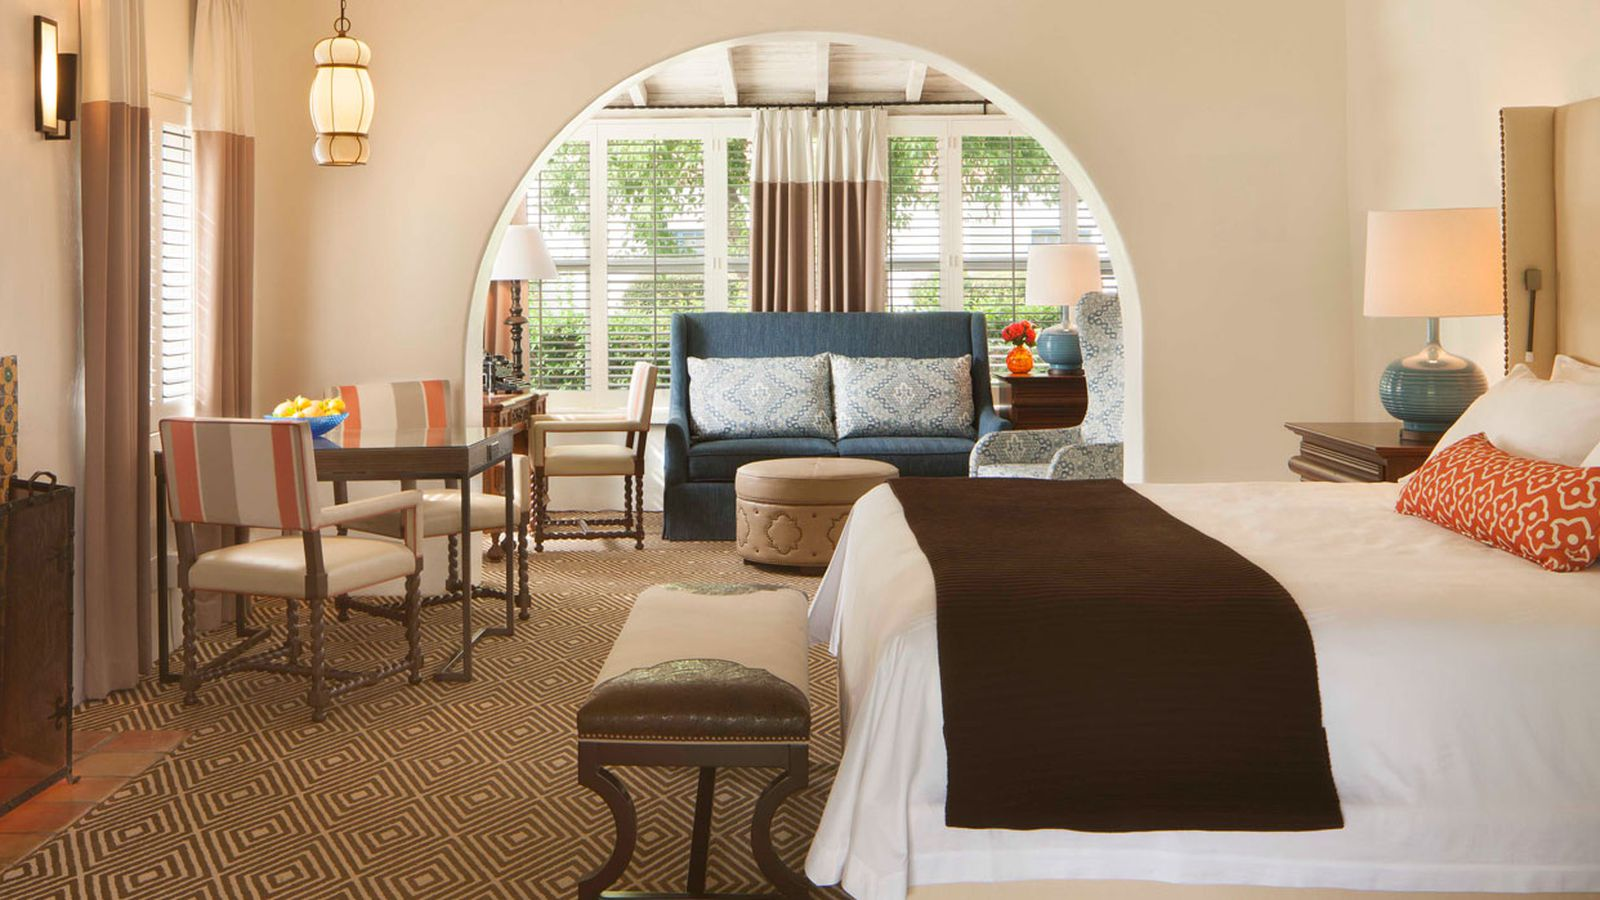 Score Luxury Hotel Furniture At Next Week S Epic Clearance